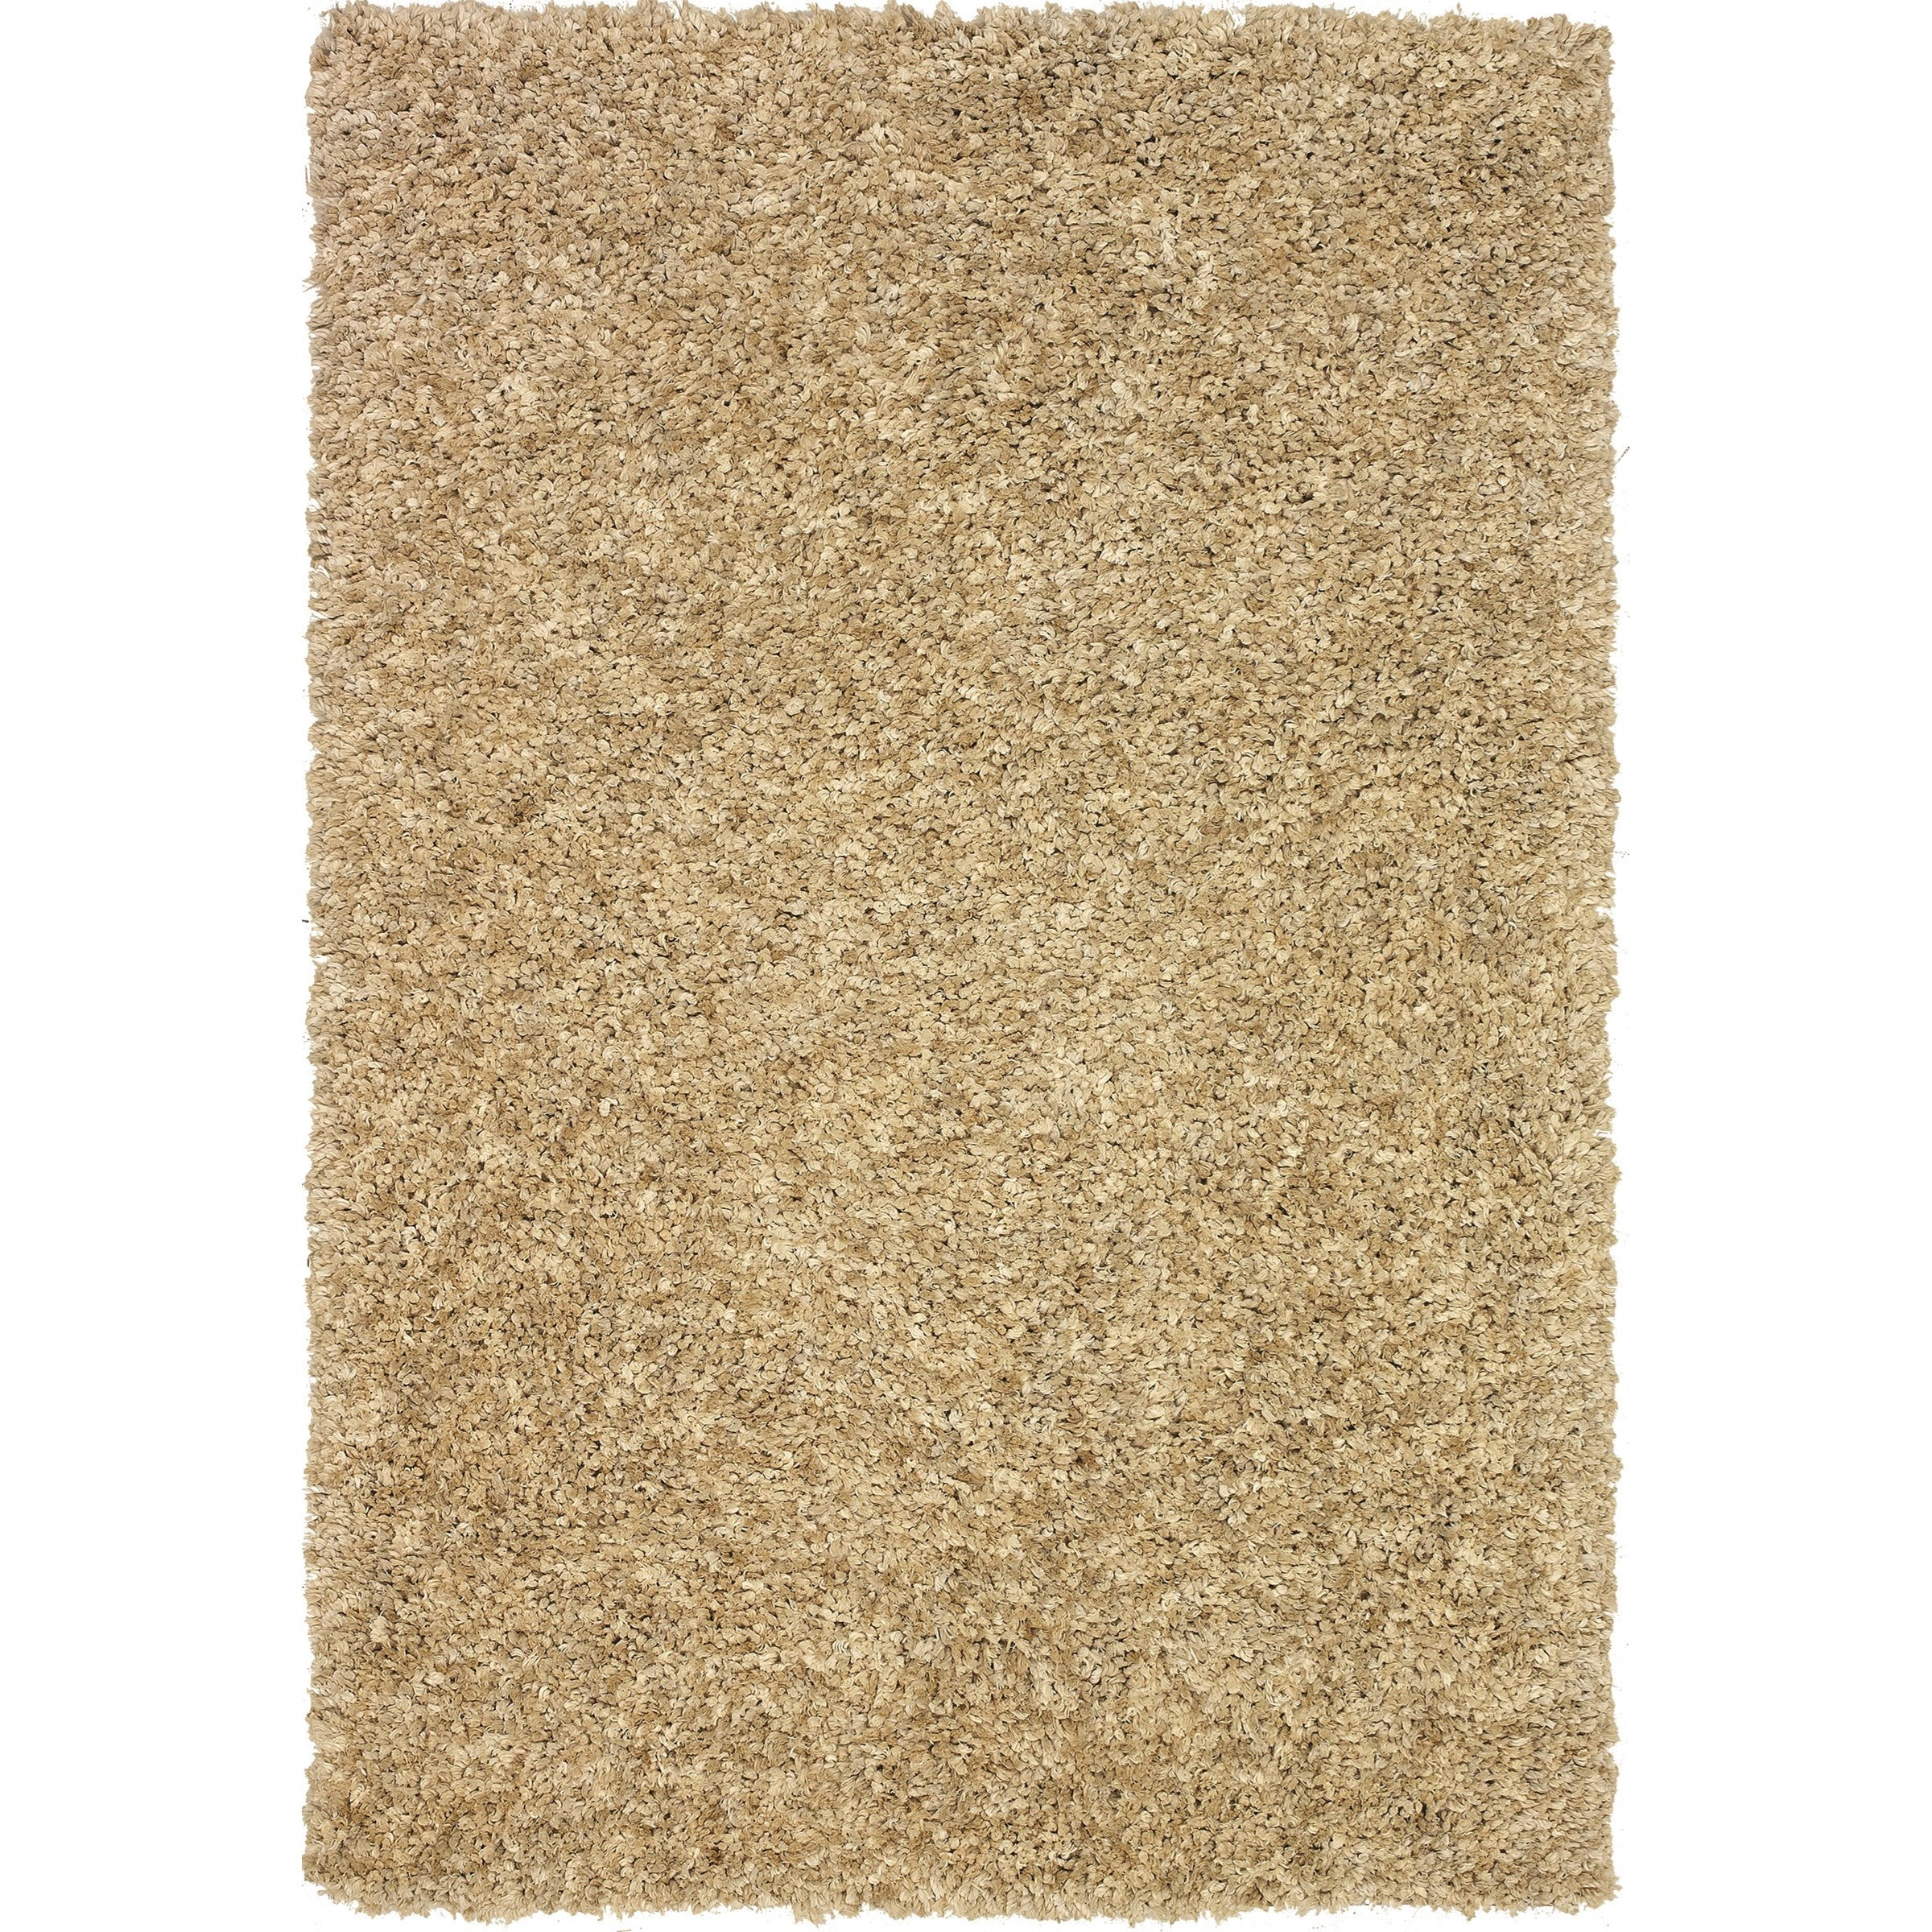 "Utopia Sand 3'6""X5'6"" Rug by Dalyn at Sadler's Home Furnishings"